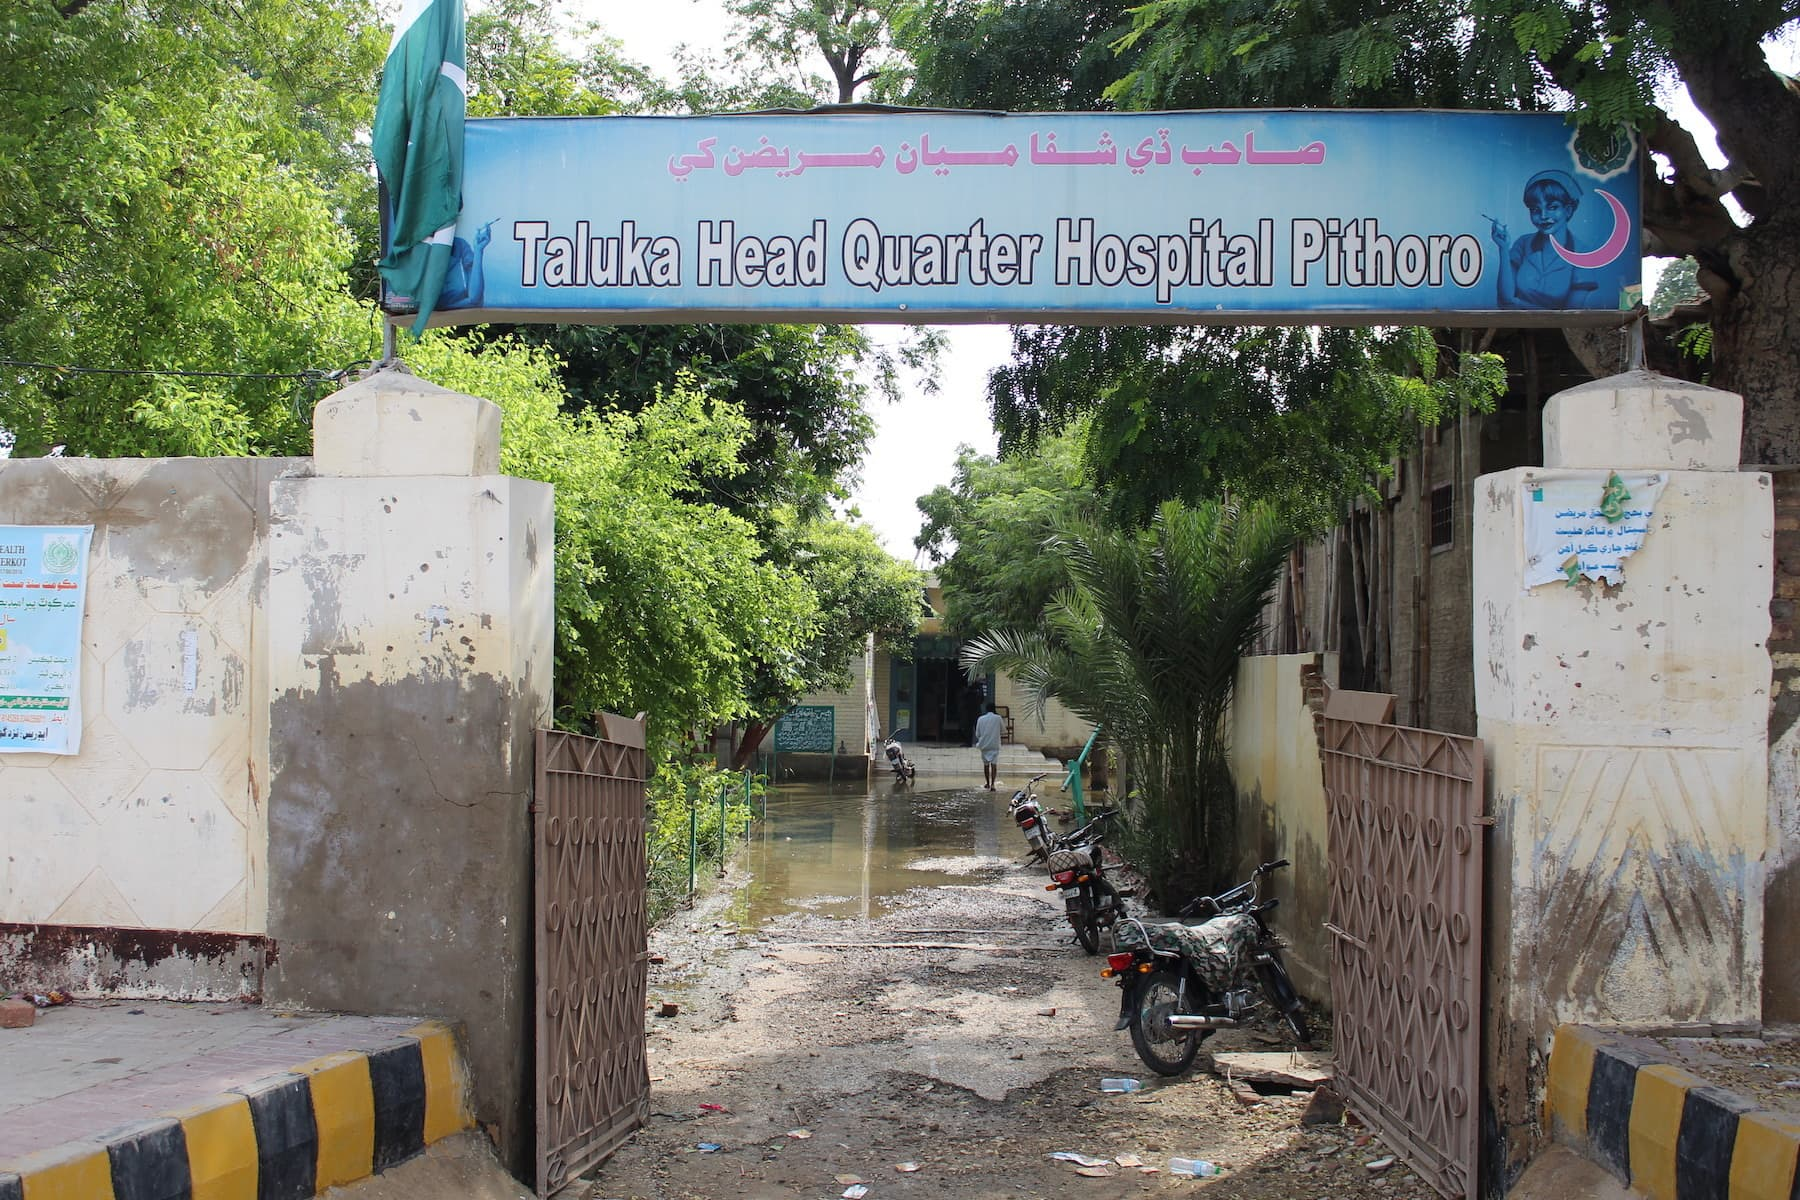 The path leading to the main building at the Taluka Headquarter Hospital Pithoro is submerged in ankle-deep water for the last 15 days. — Photo by author